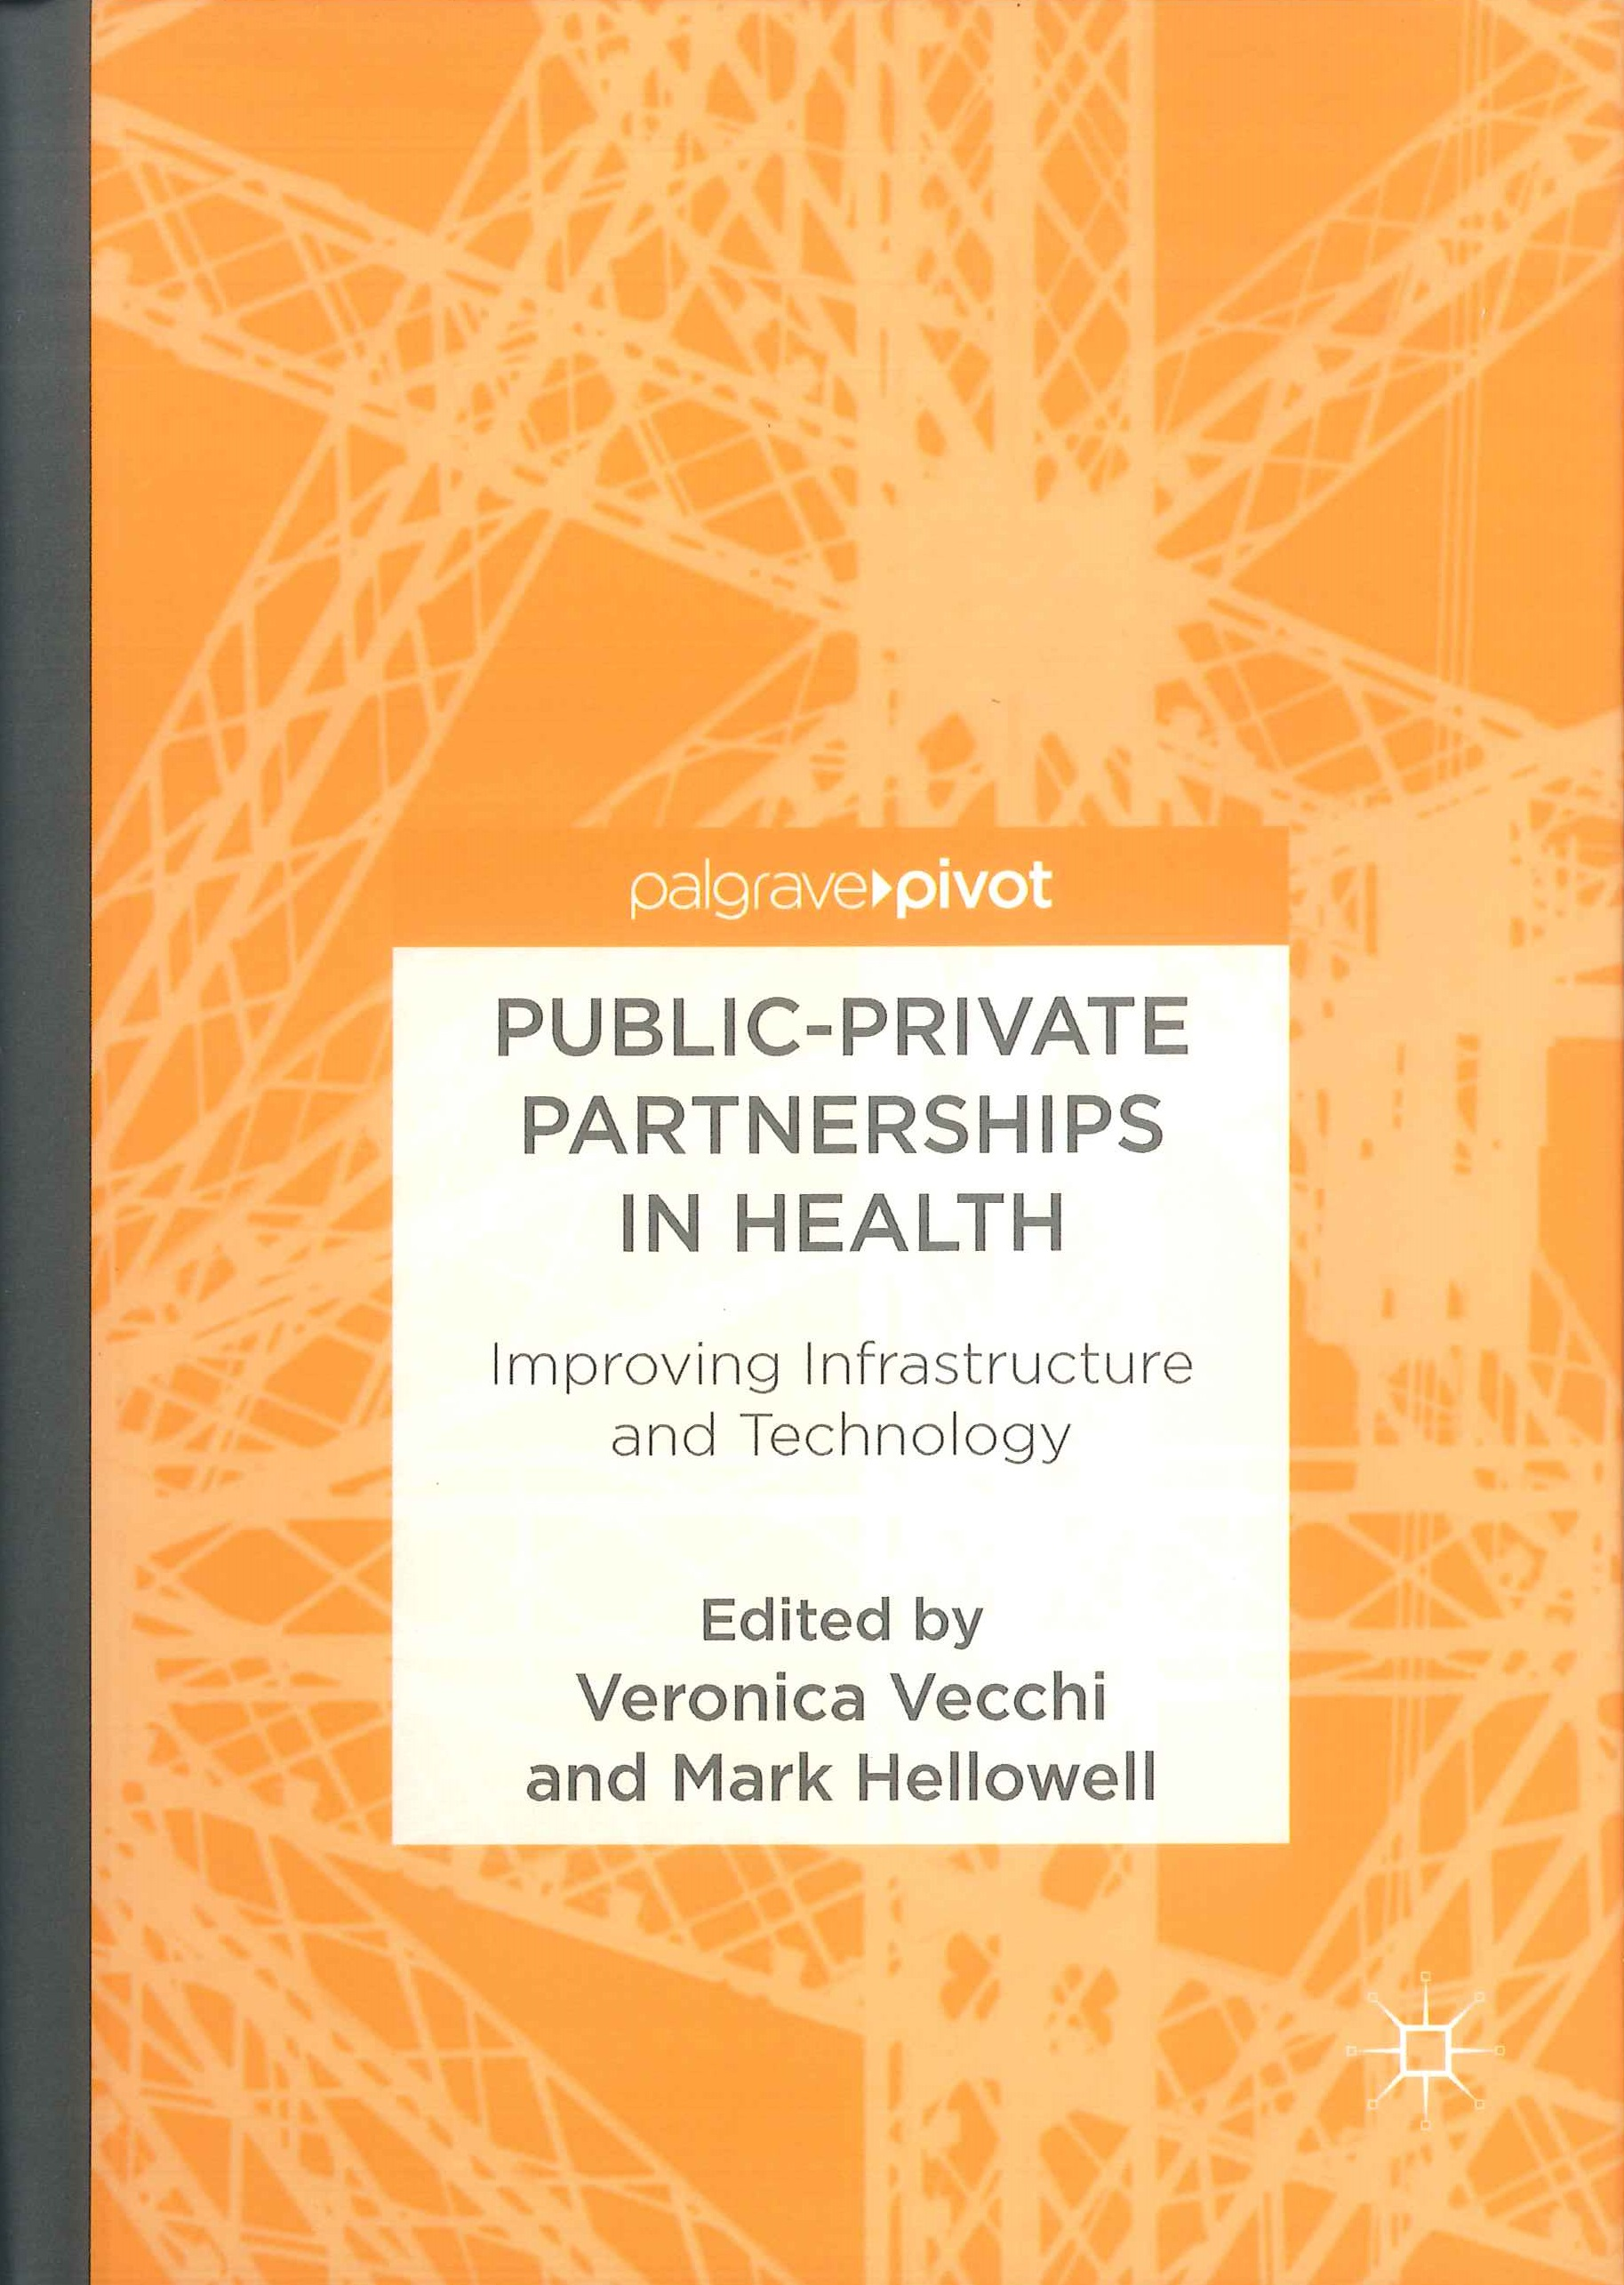 Public-private partnerships in health:improving infrastructure and technology